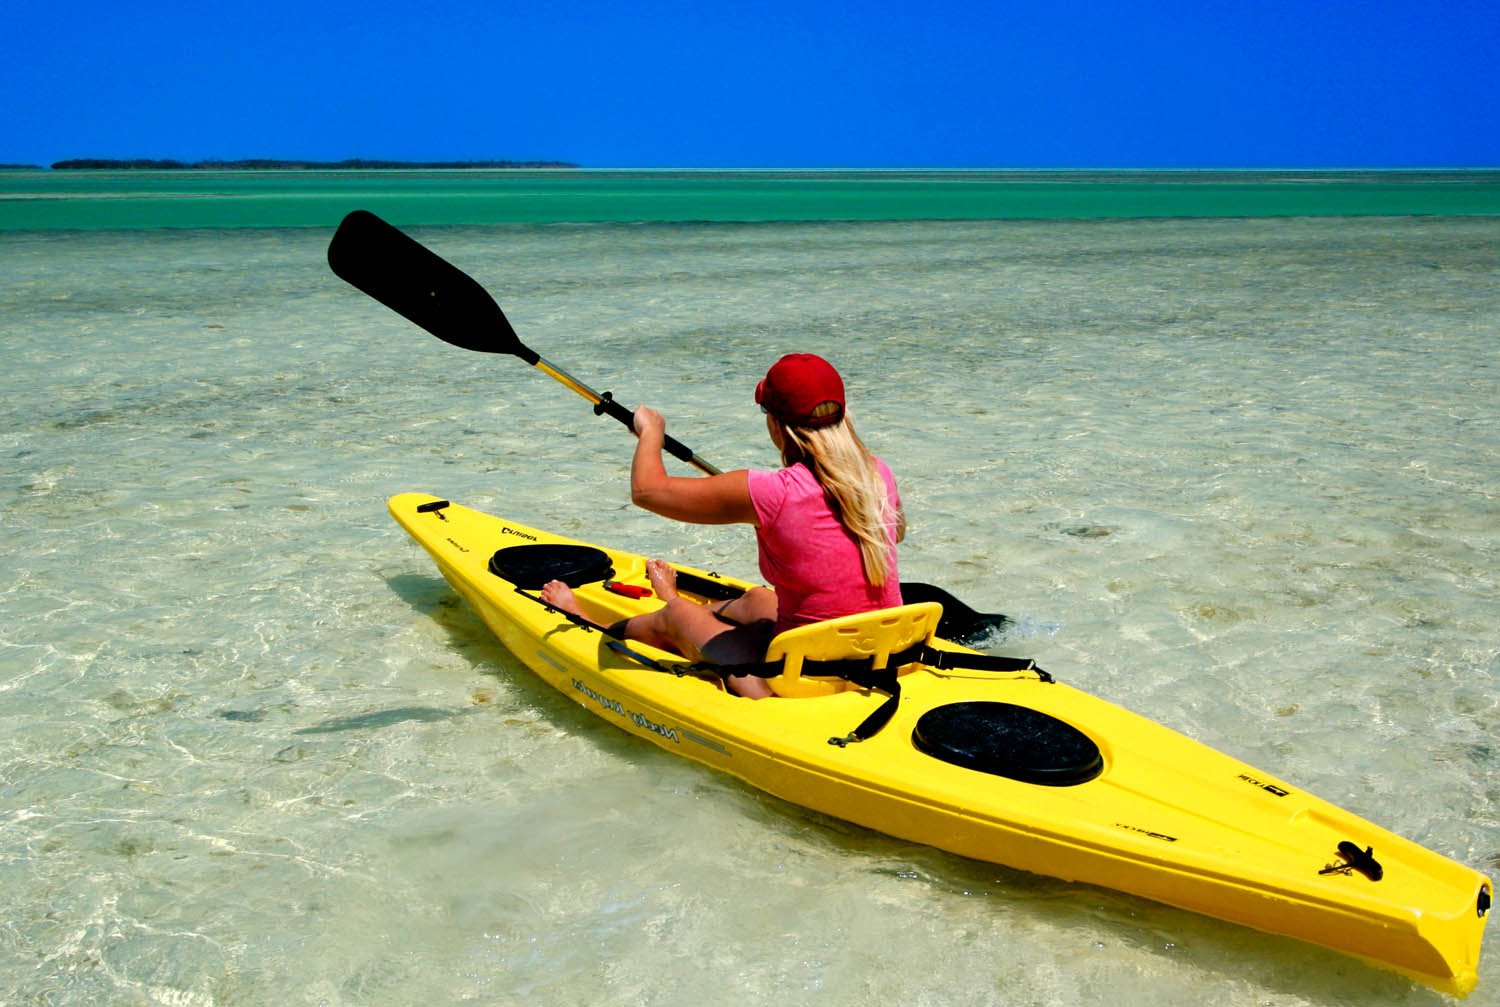 Kayaker in Gulf of Mexico